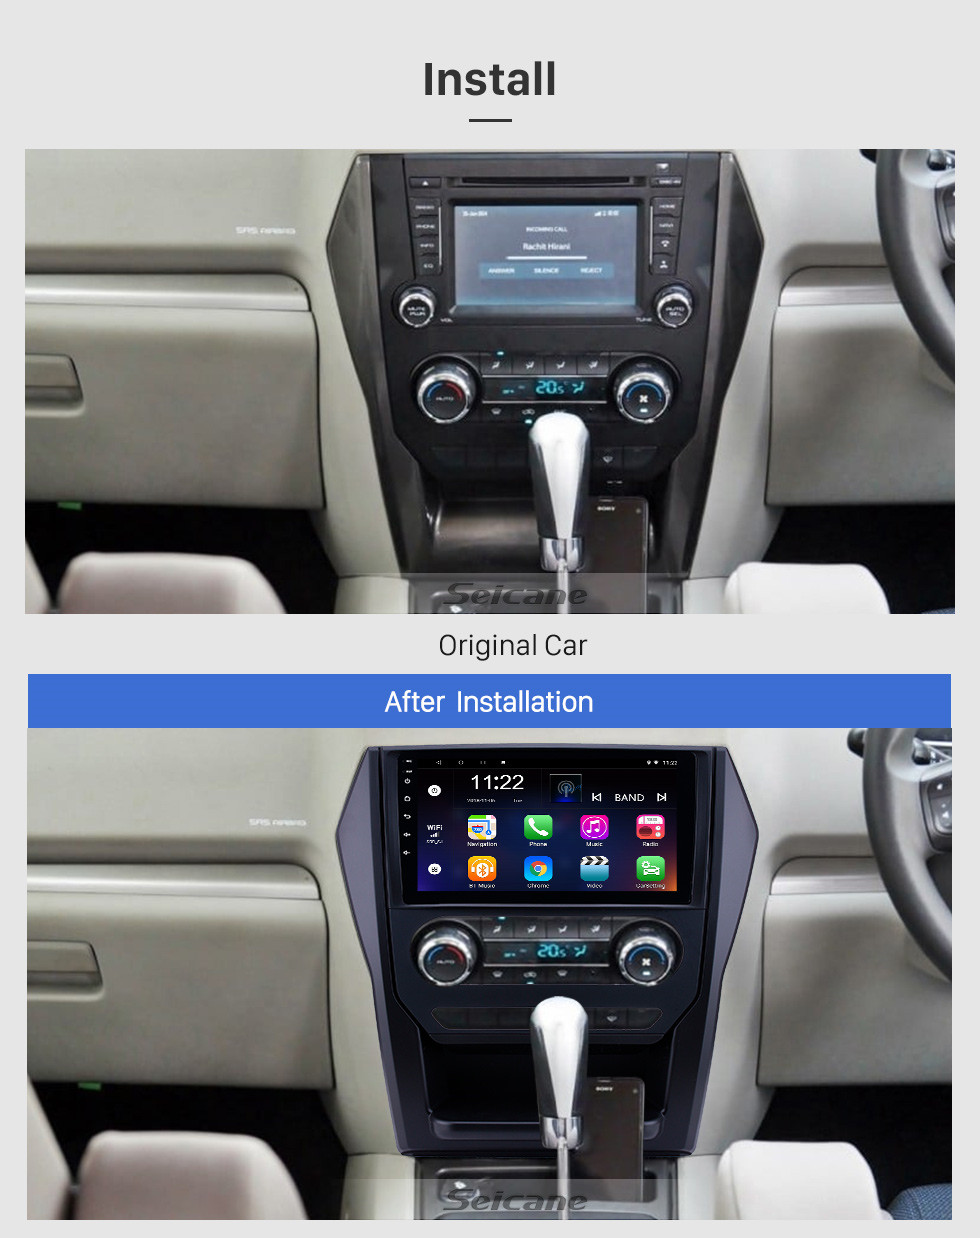 Seicane 2015 Mahindra Scorpio Auto A/C Android 10.0 9 inch GPS Navigation Radio Bluetooth HD Touchscreen USB Carplay Music support TPMS DAB+ Mirror Link